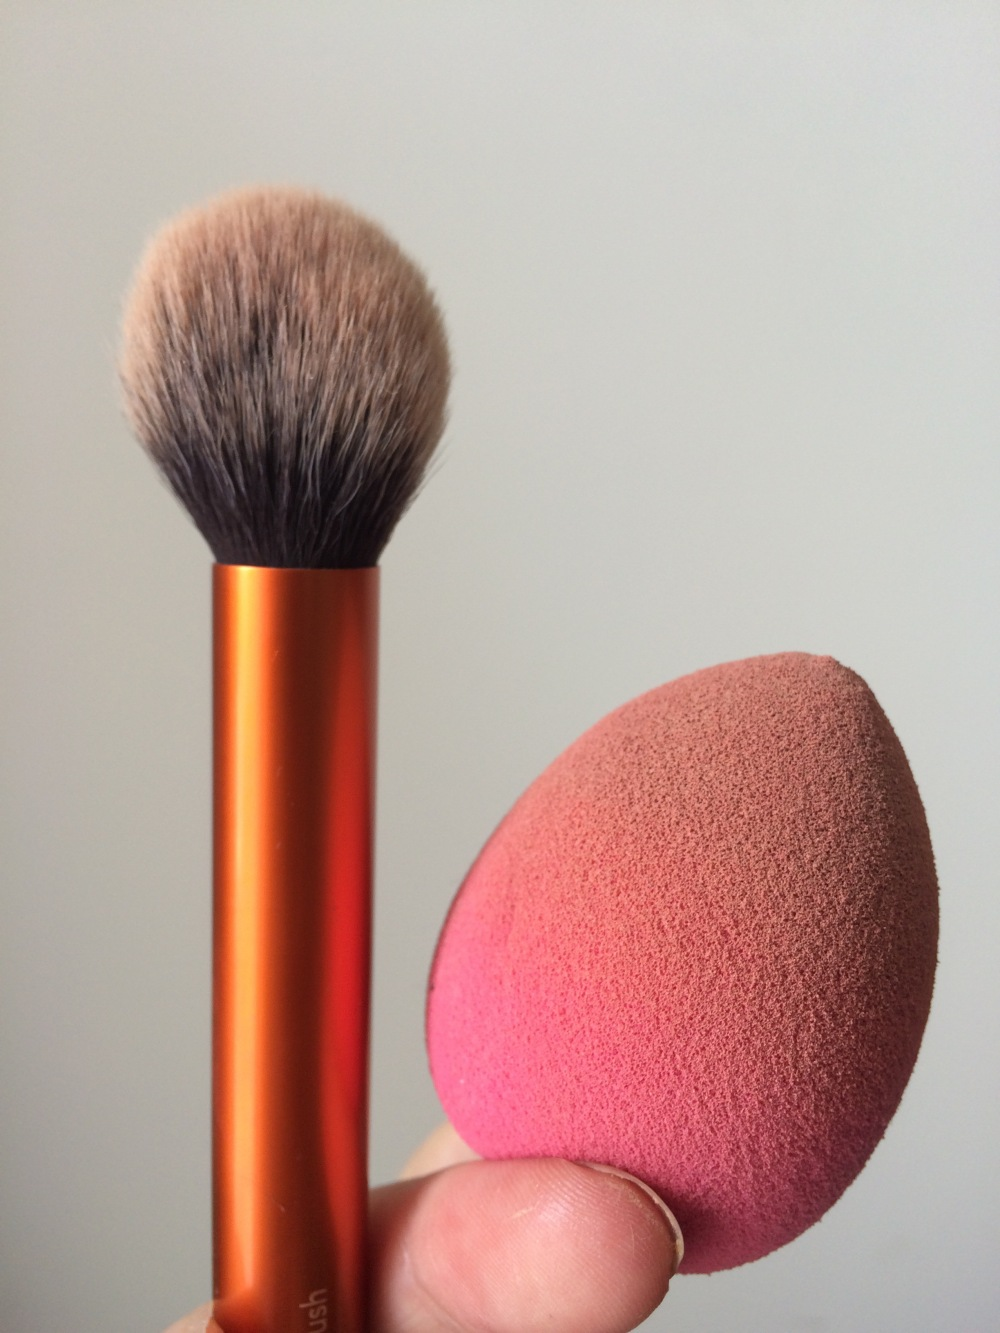 tools for makeup baking with powder . powder brush and sponge